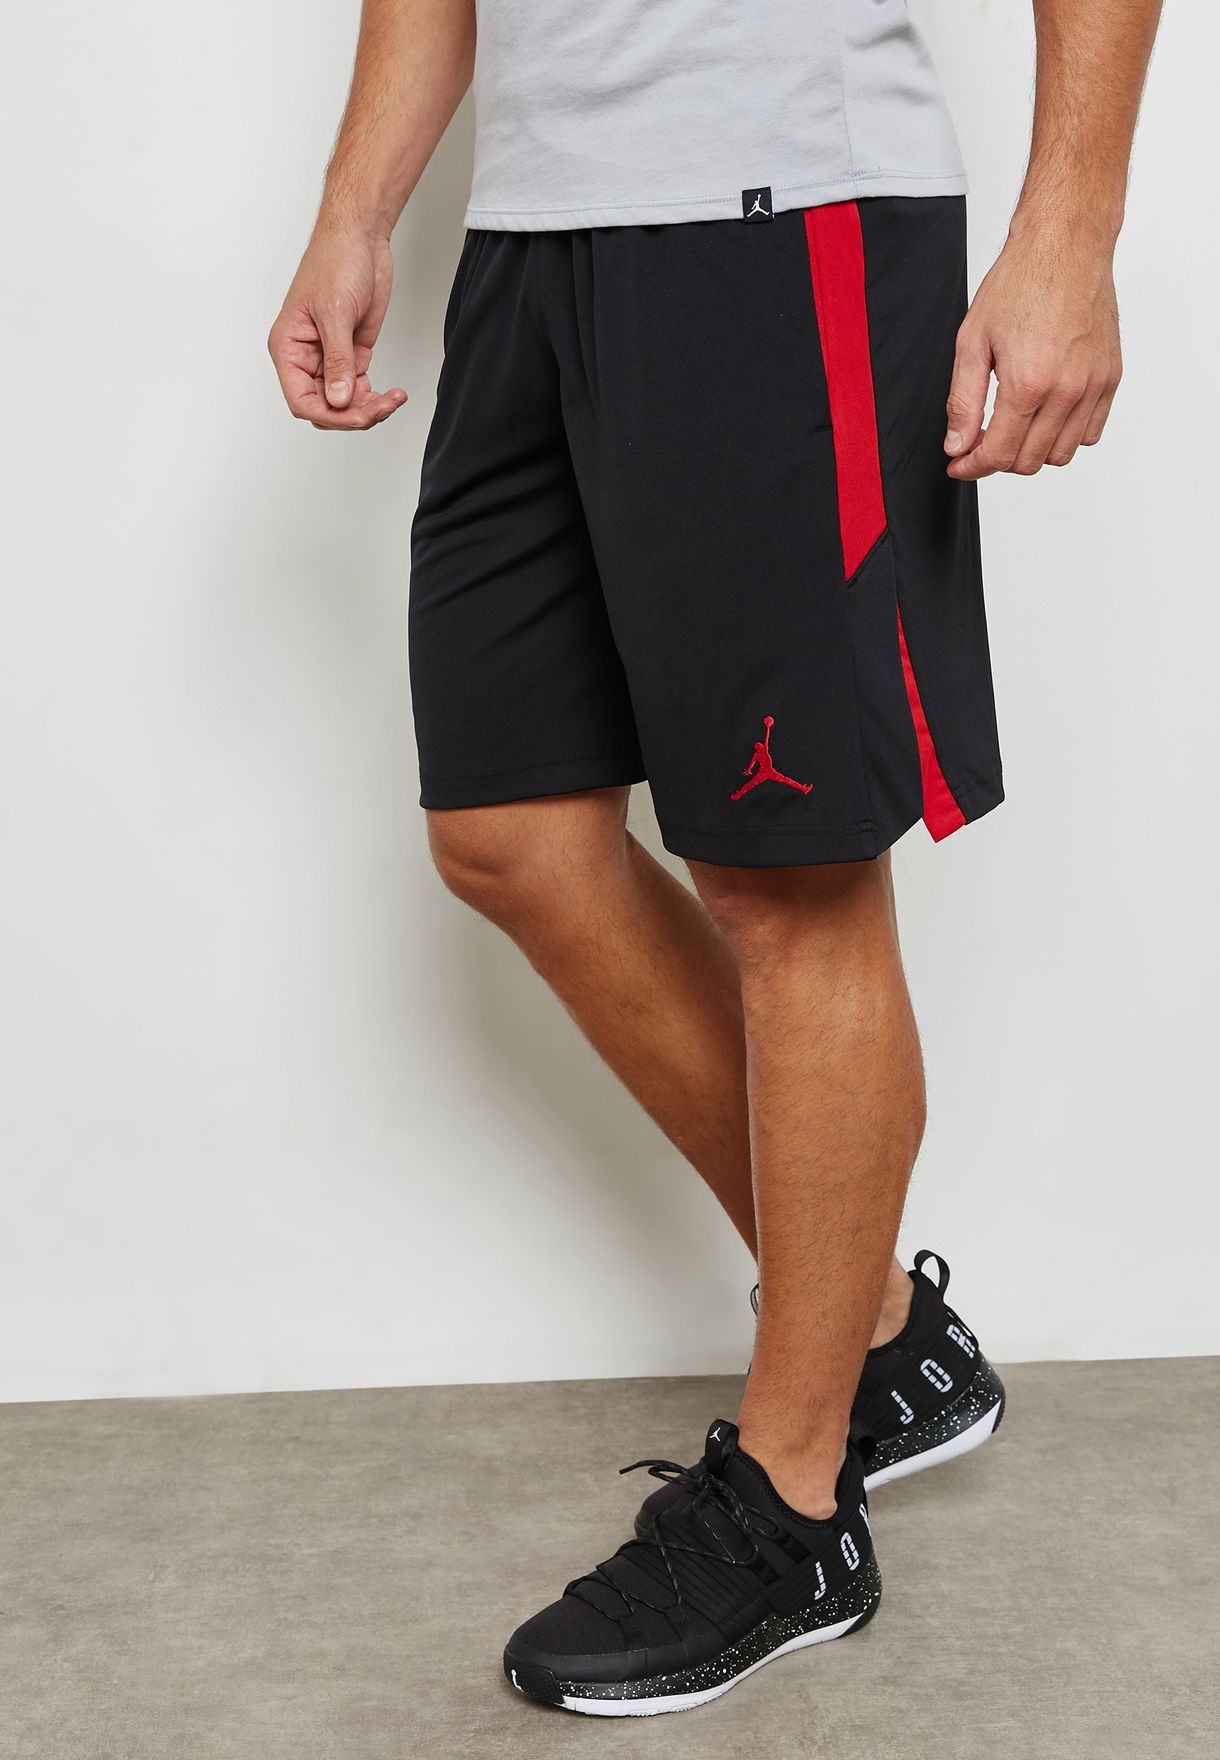 8e15b6df163 Shop Nike black Jordan Dri-FIT 23 Alpha Knit Shorts 905782-010 for ...